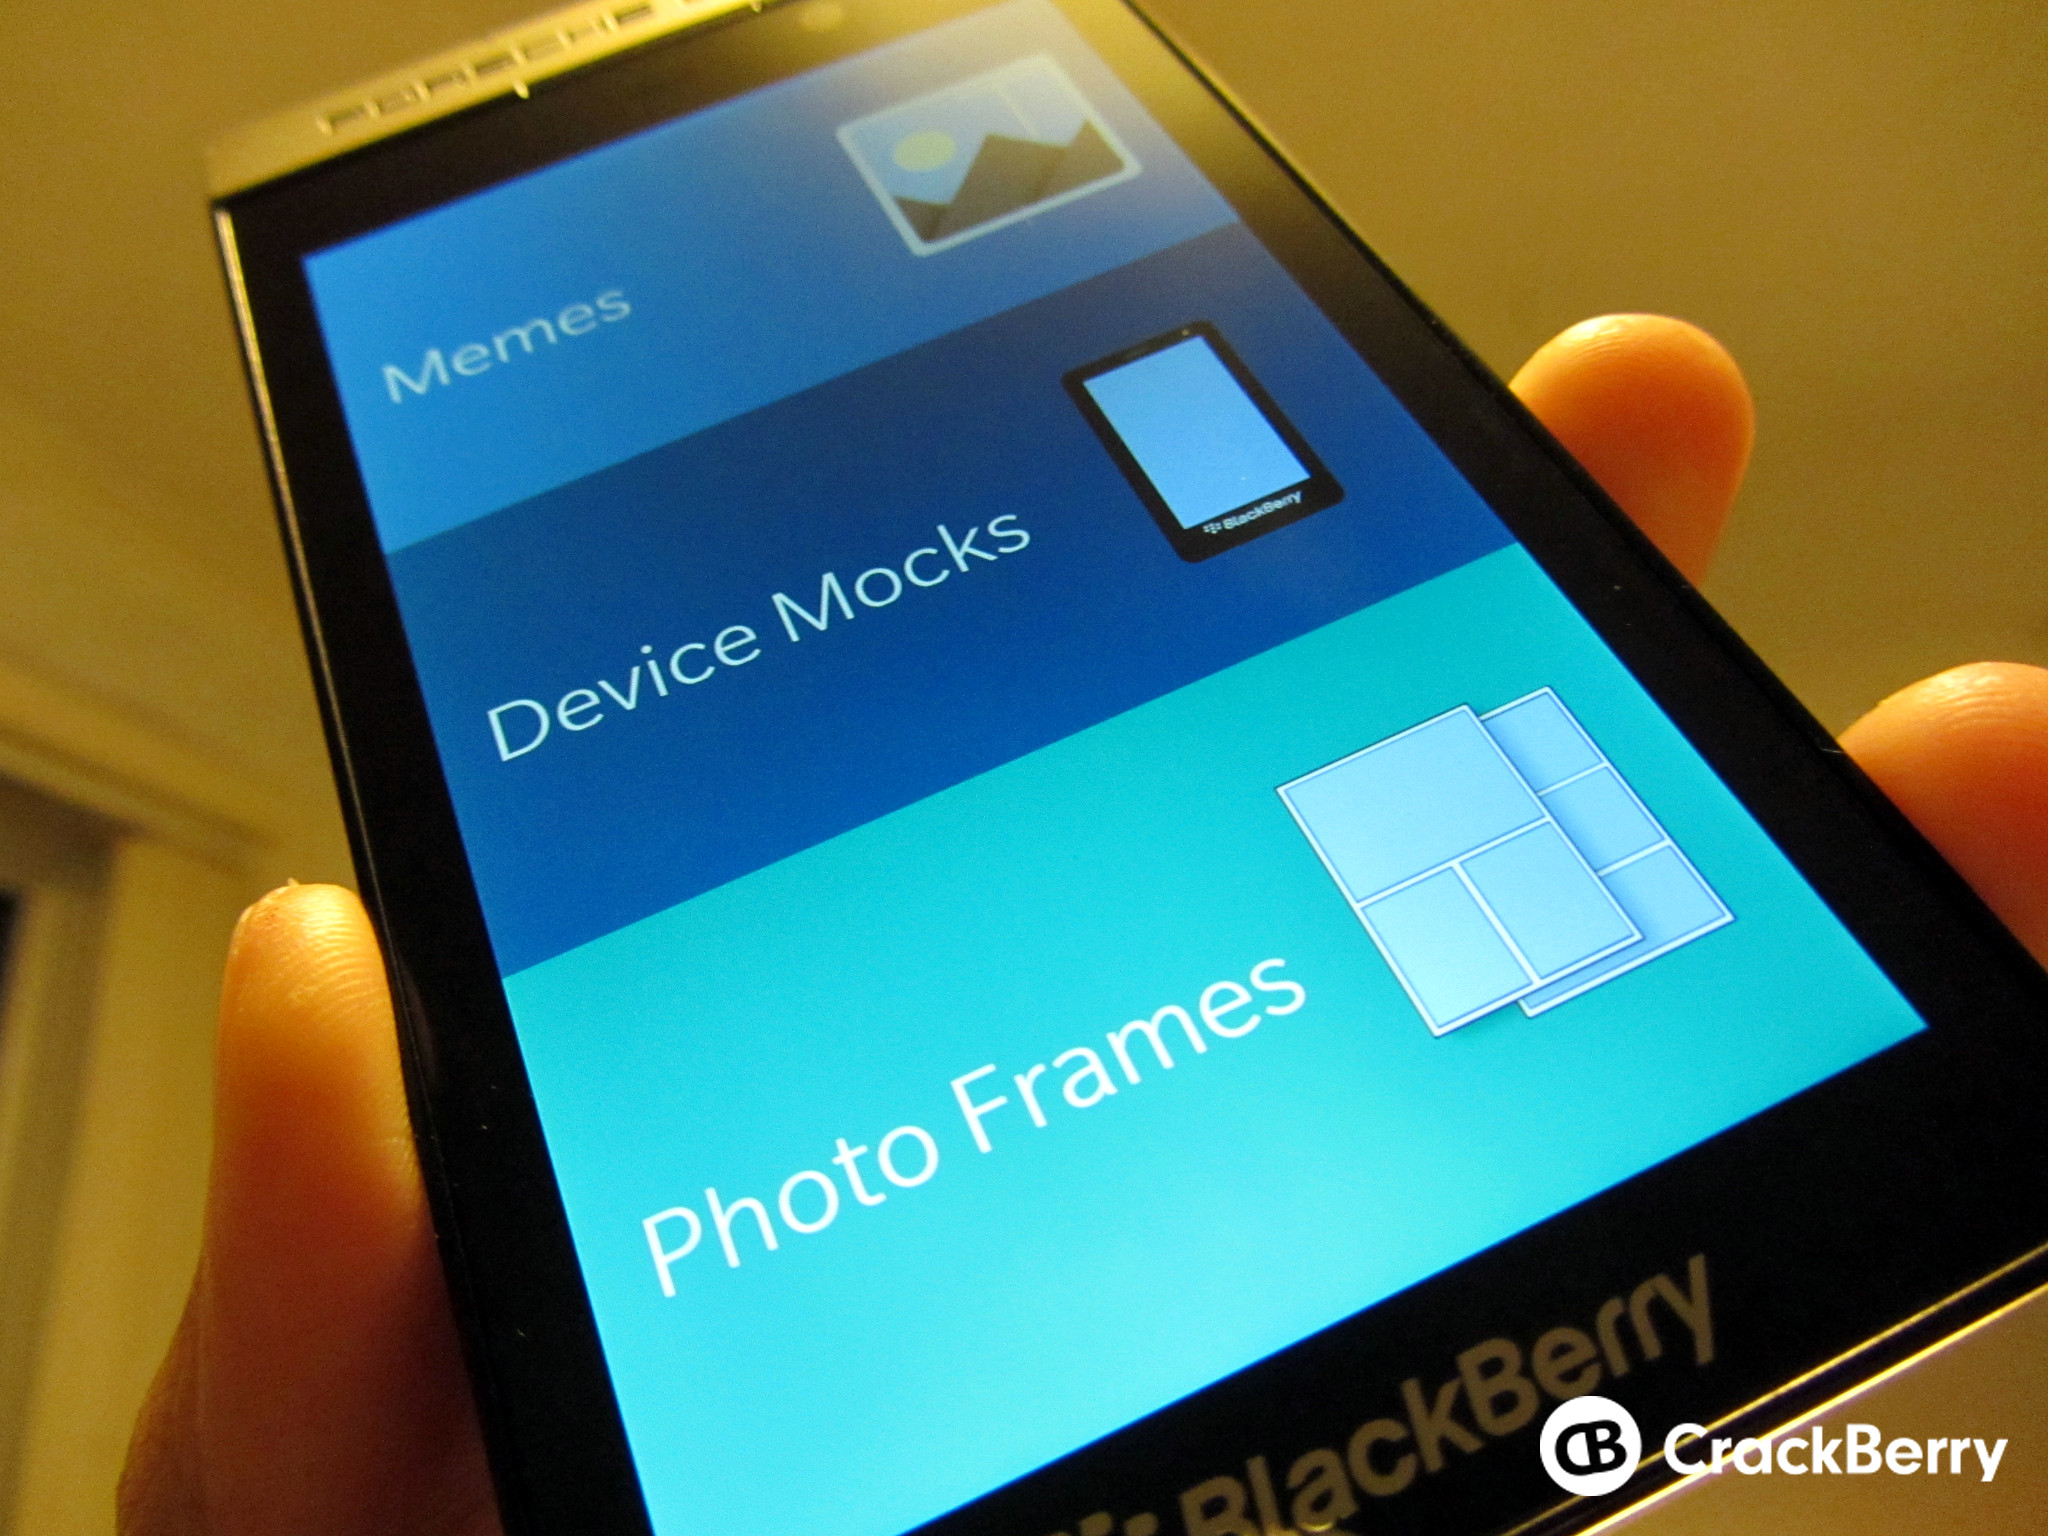 Photo frames and app settings now available in the latest MockIt beta update